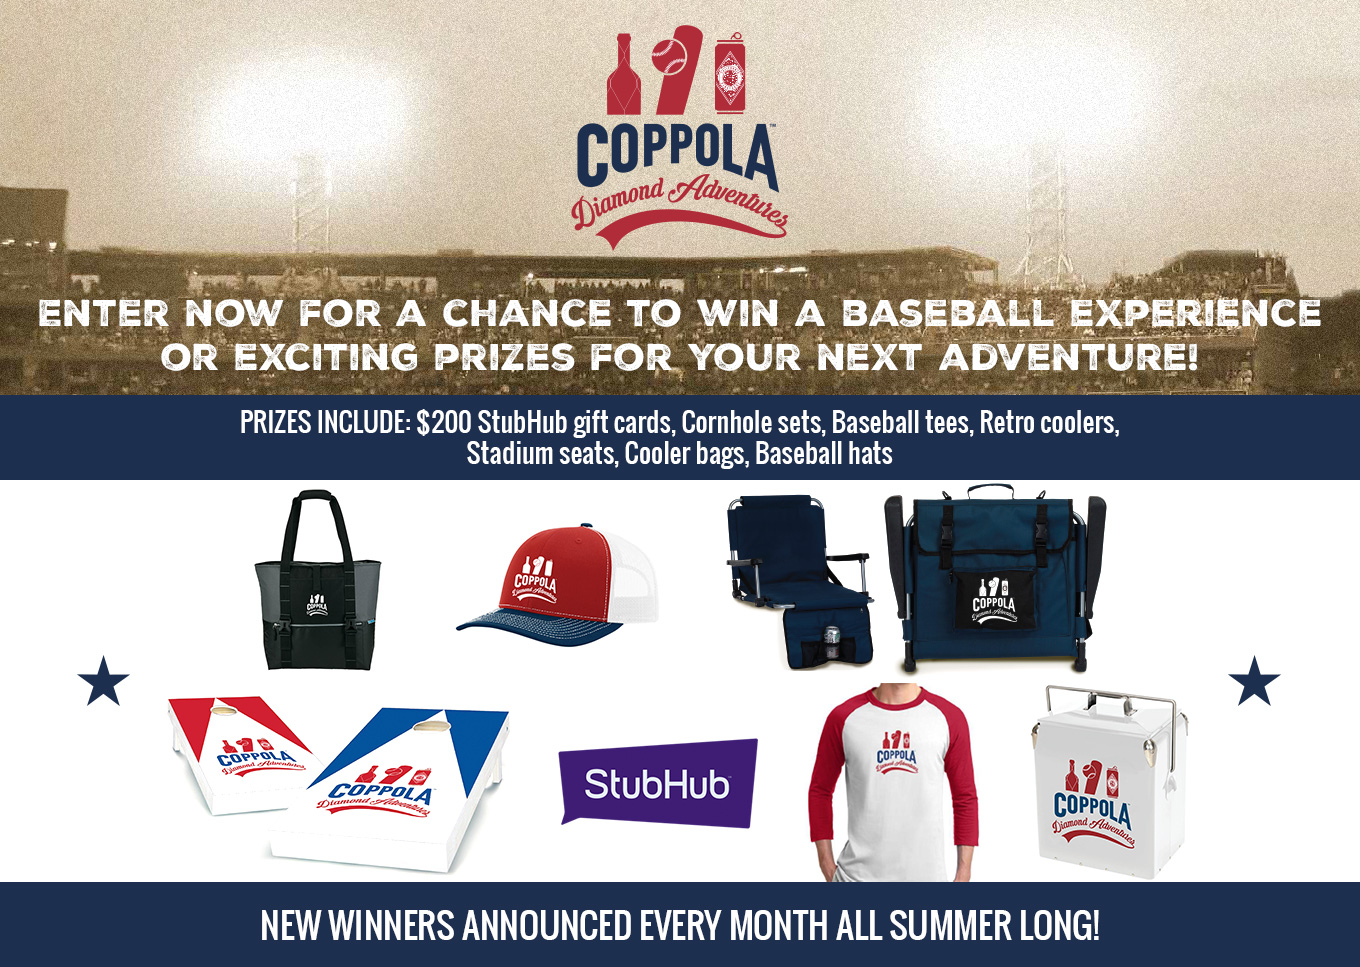 Enter now for a chance to win a baseball experience or exciting prizes for your next adventure!